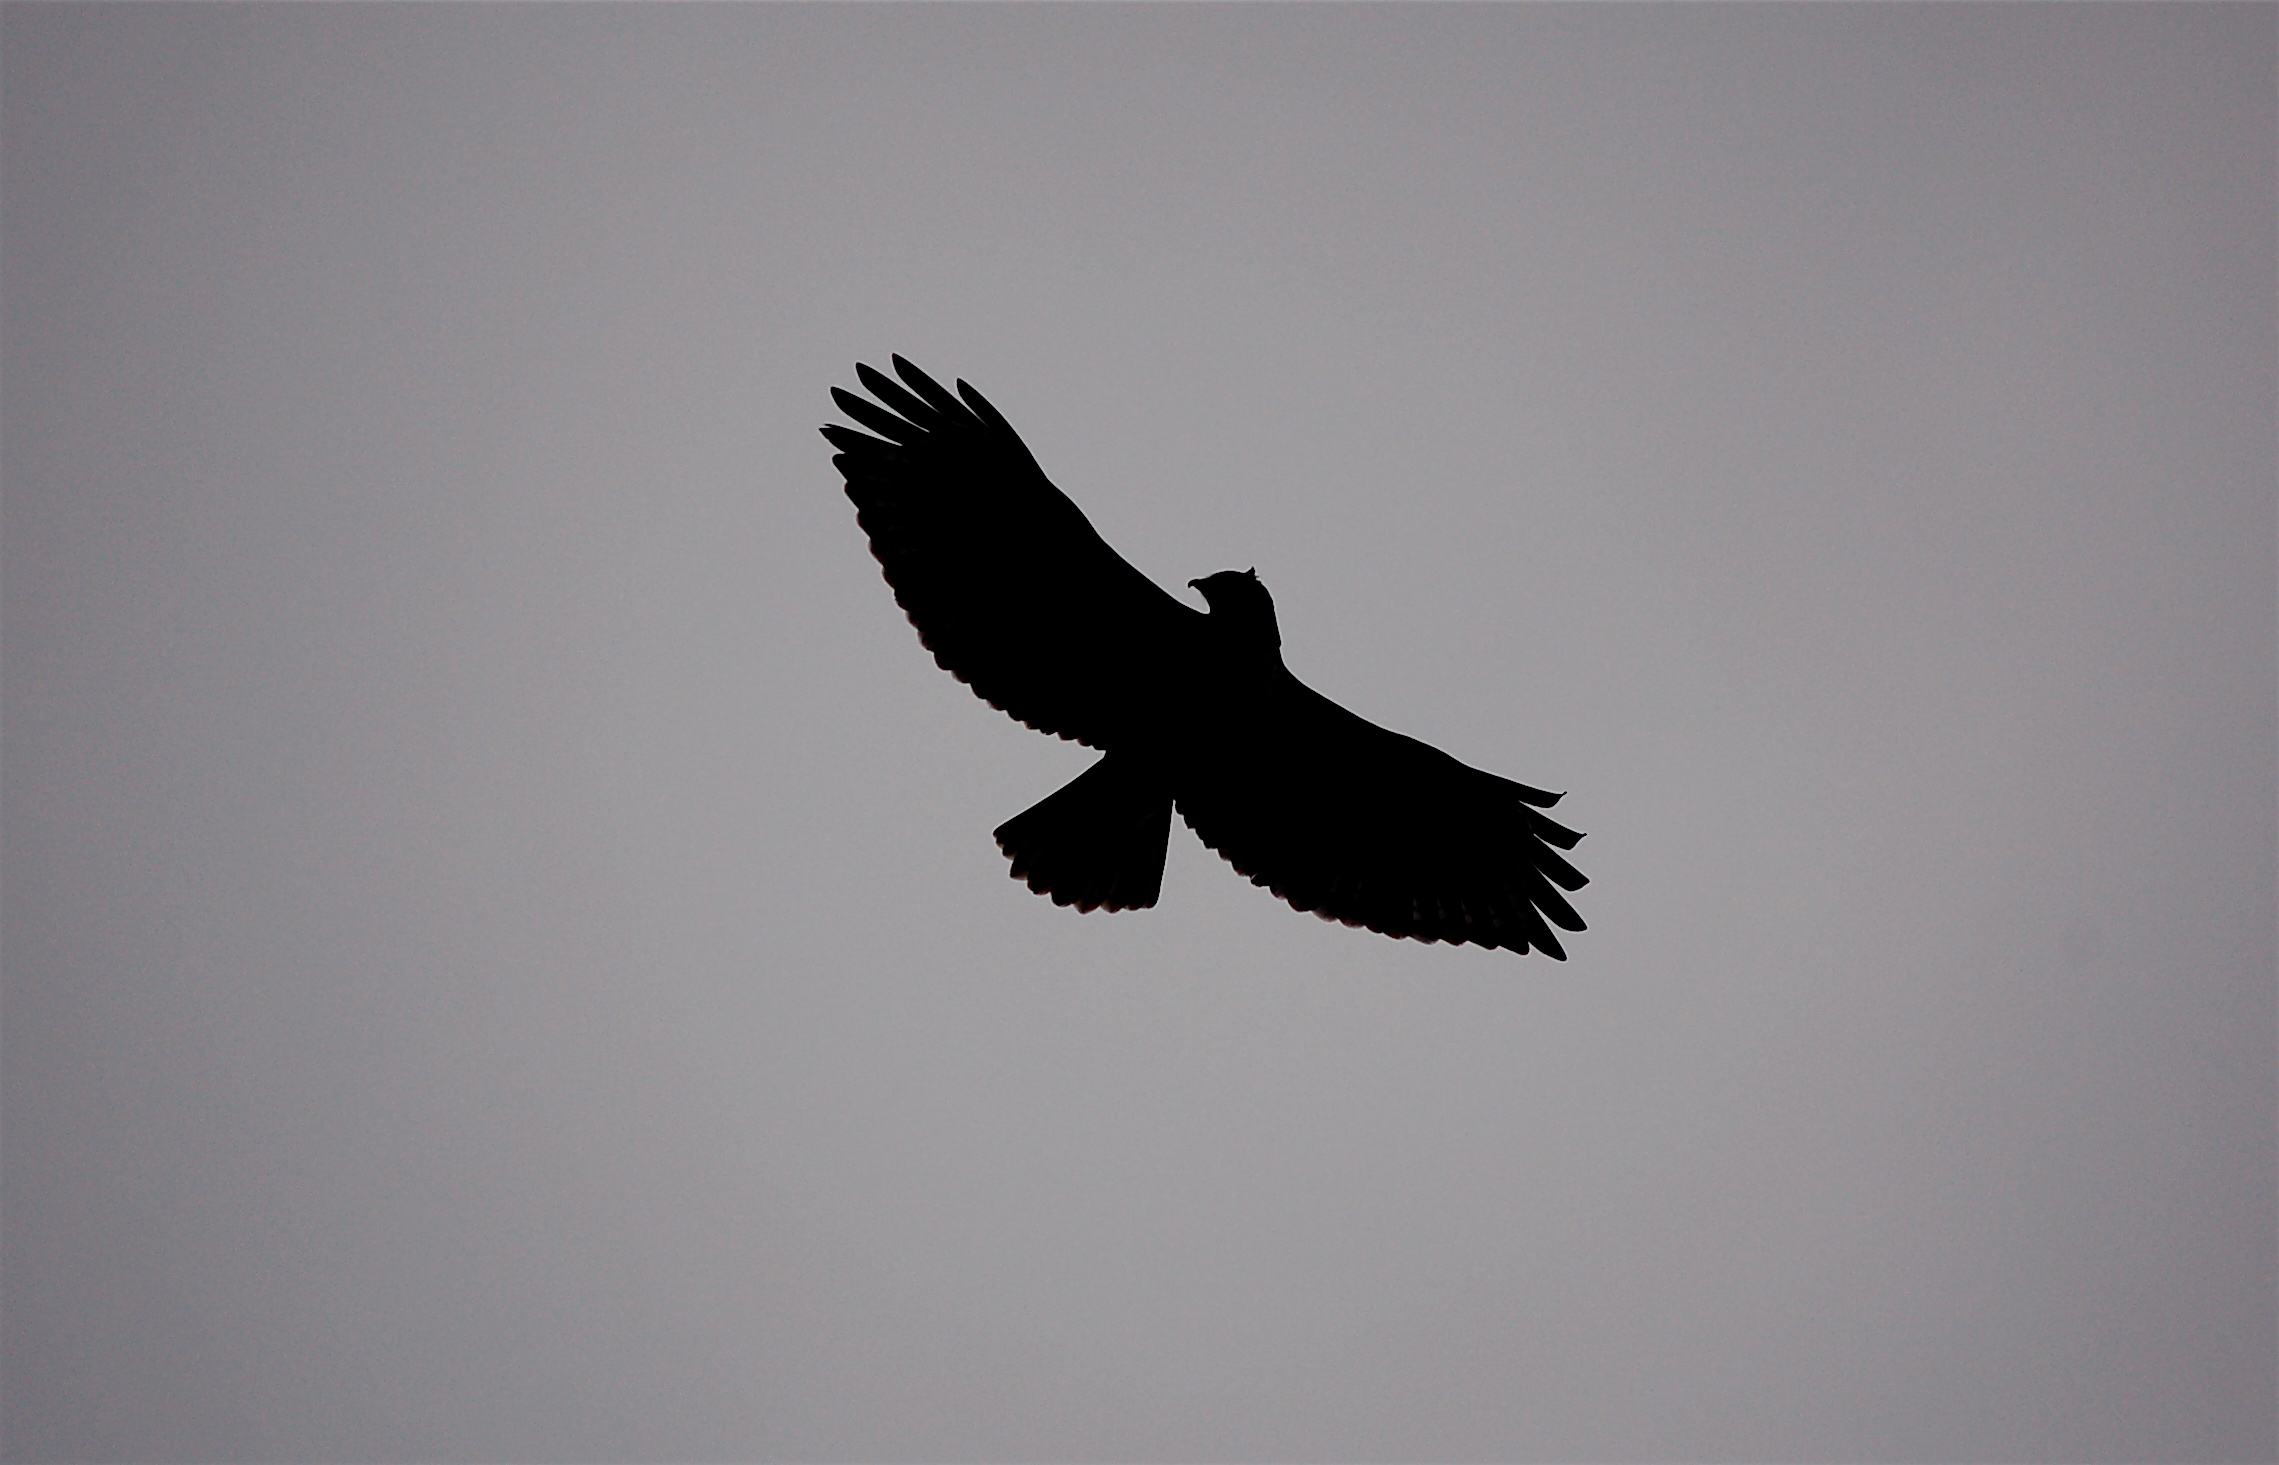 silhouette flying bird silhouette red tail hawk silhouette flying hawkFlying Hawk Silhouette